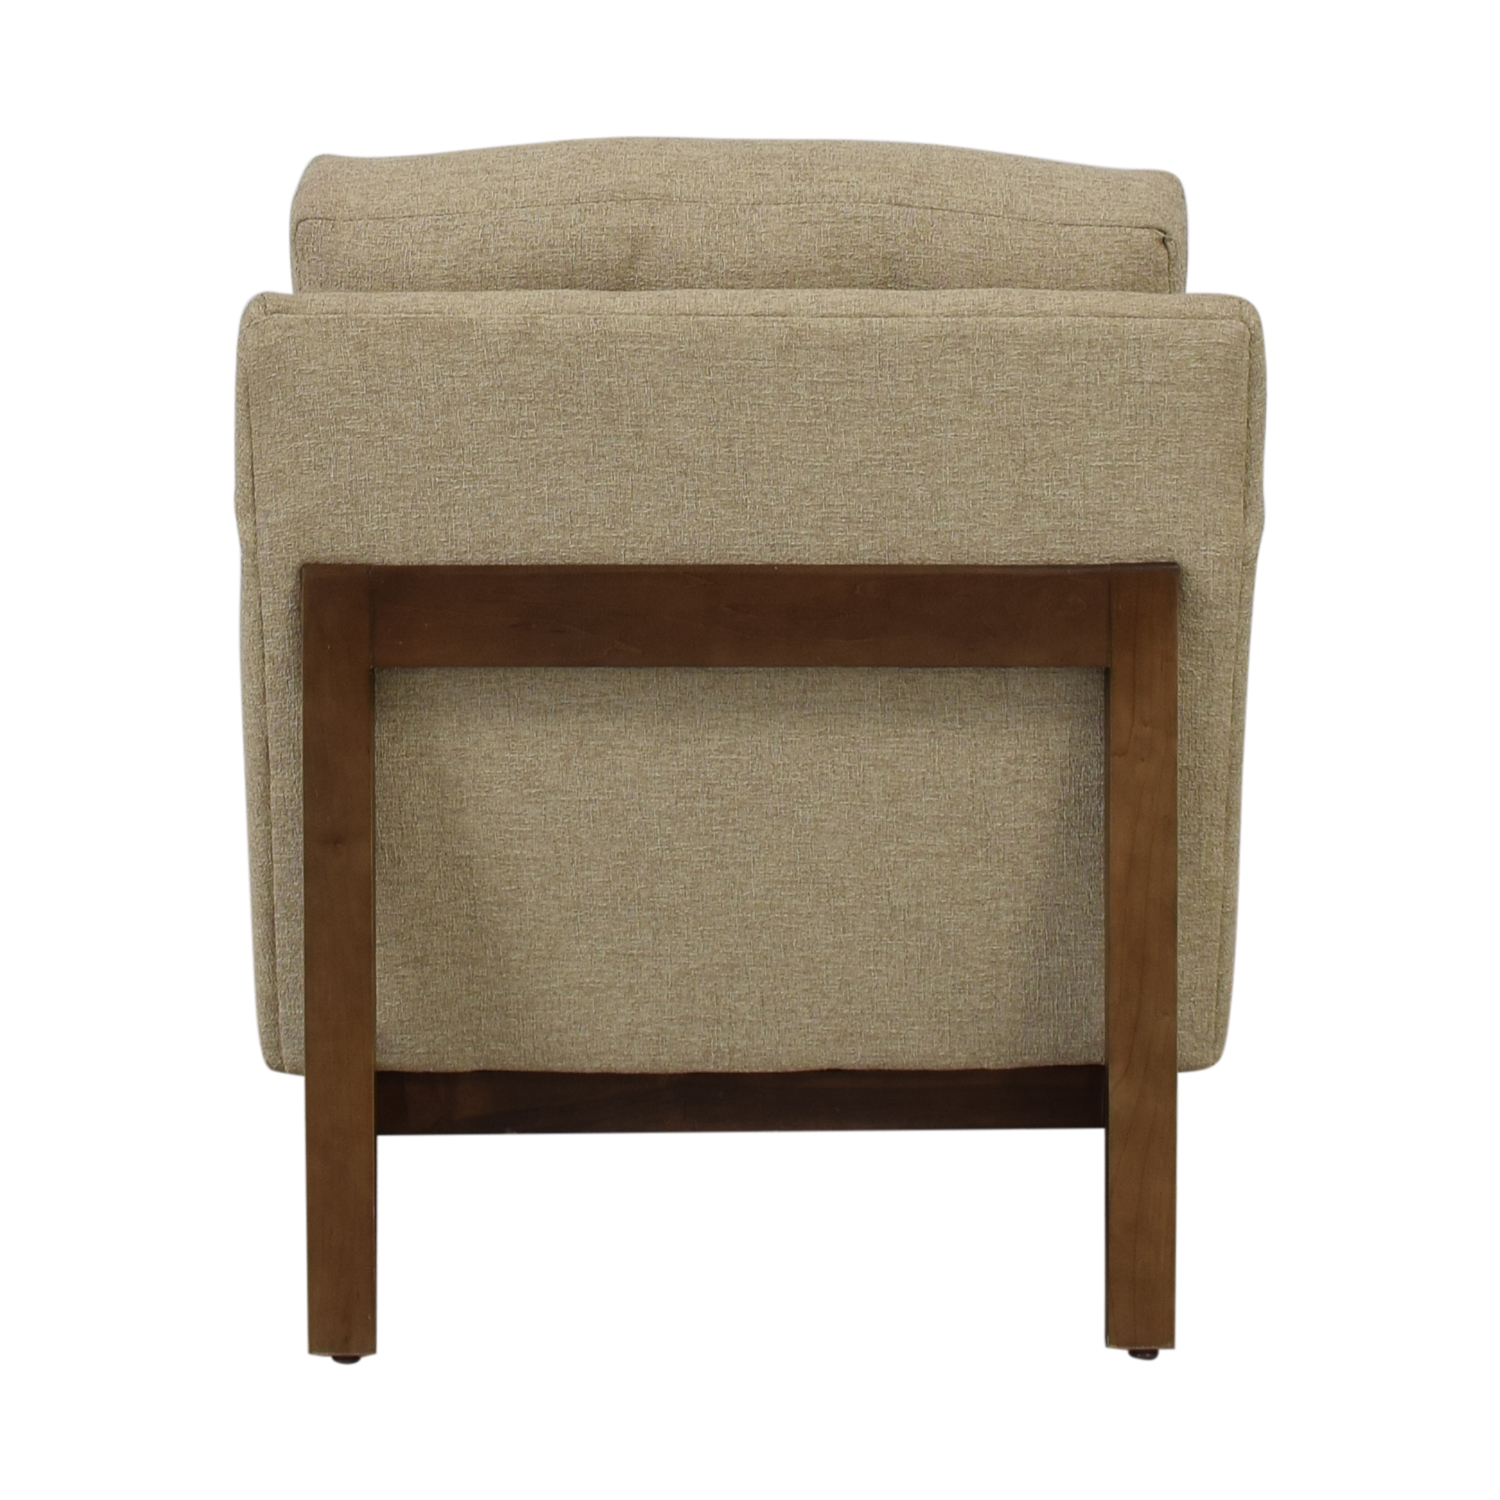 shop Rowe Furniture Ethan Beige Tufted Accent Armchair Rowe Furniture Accent Chairs